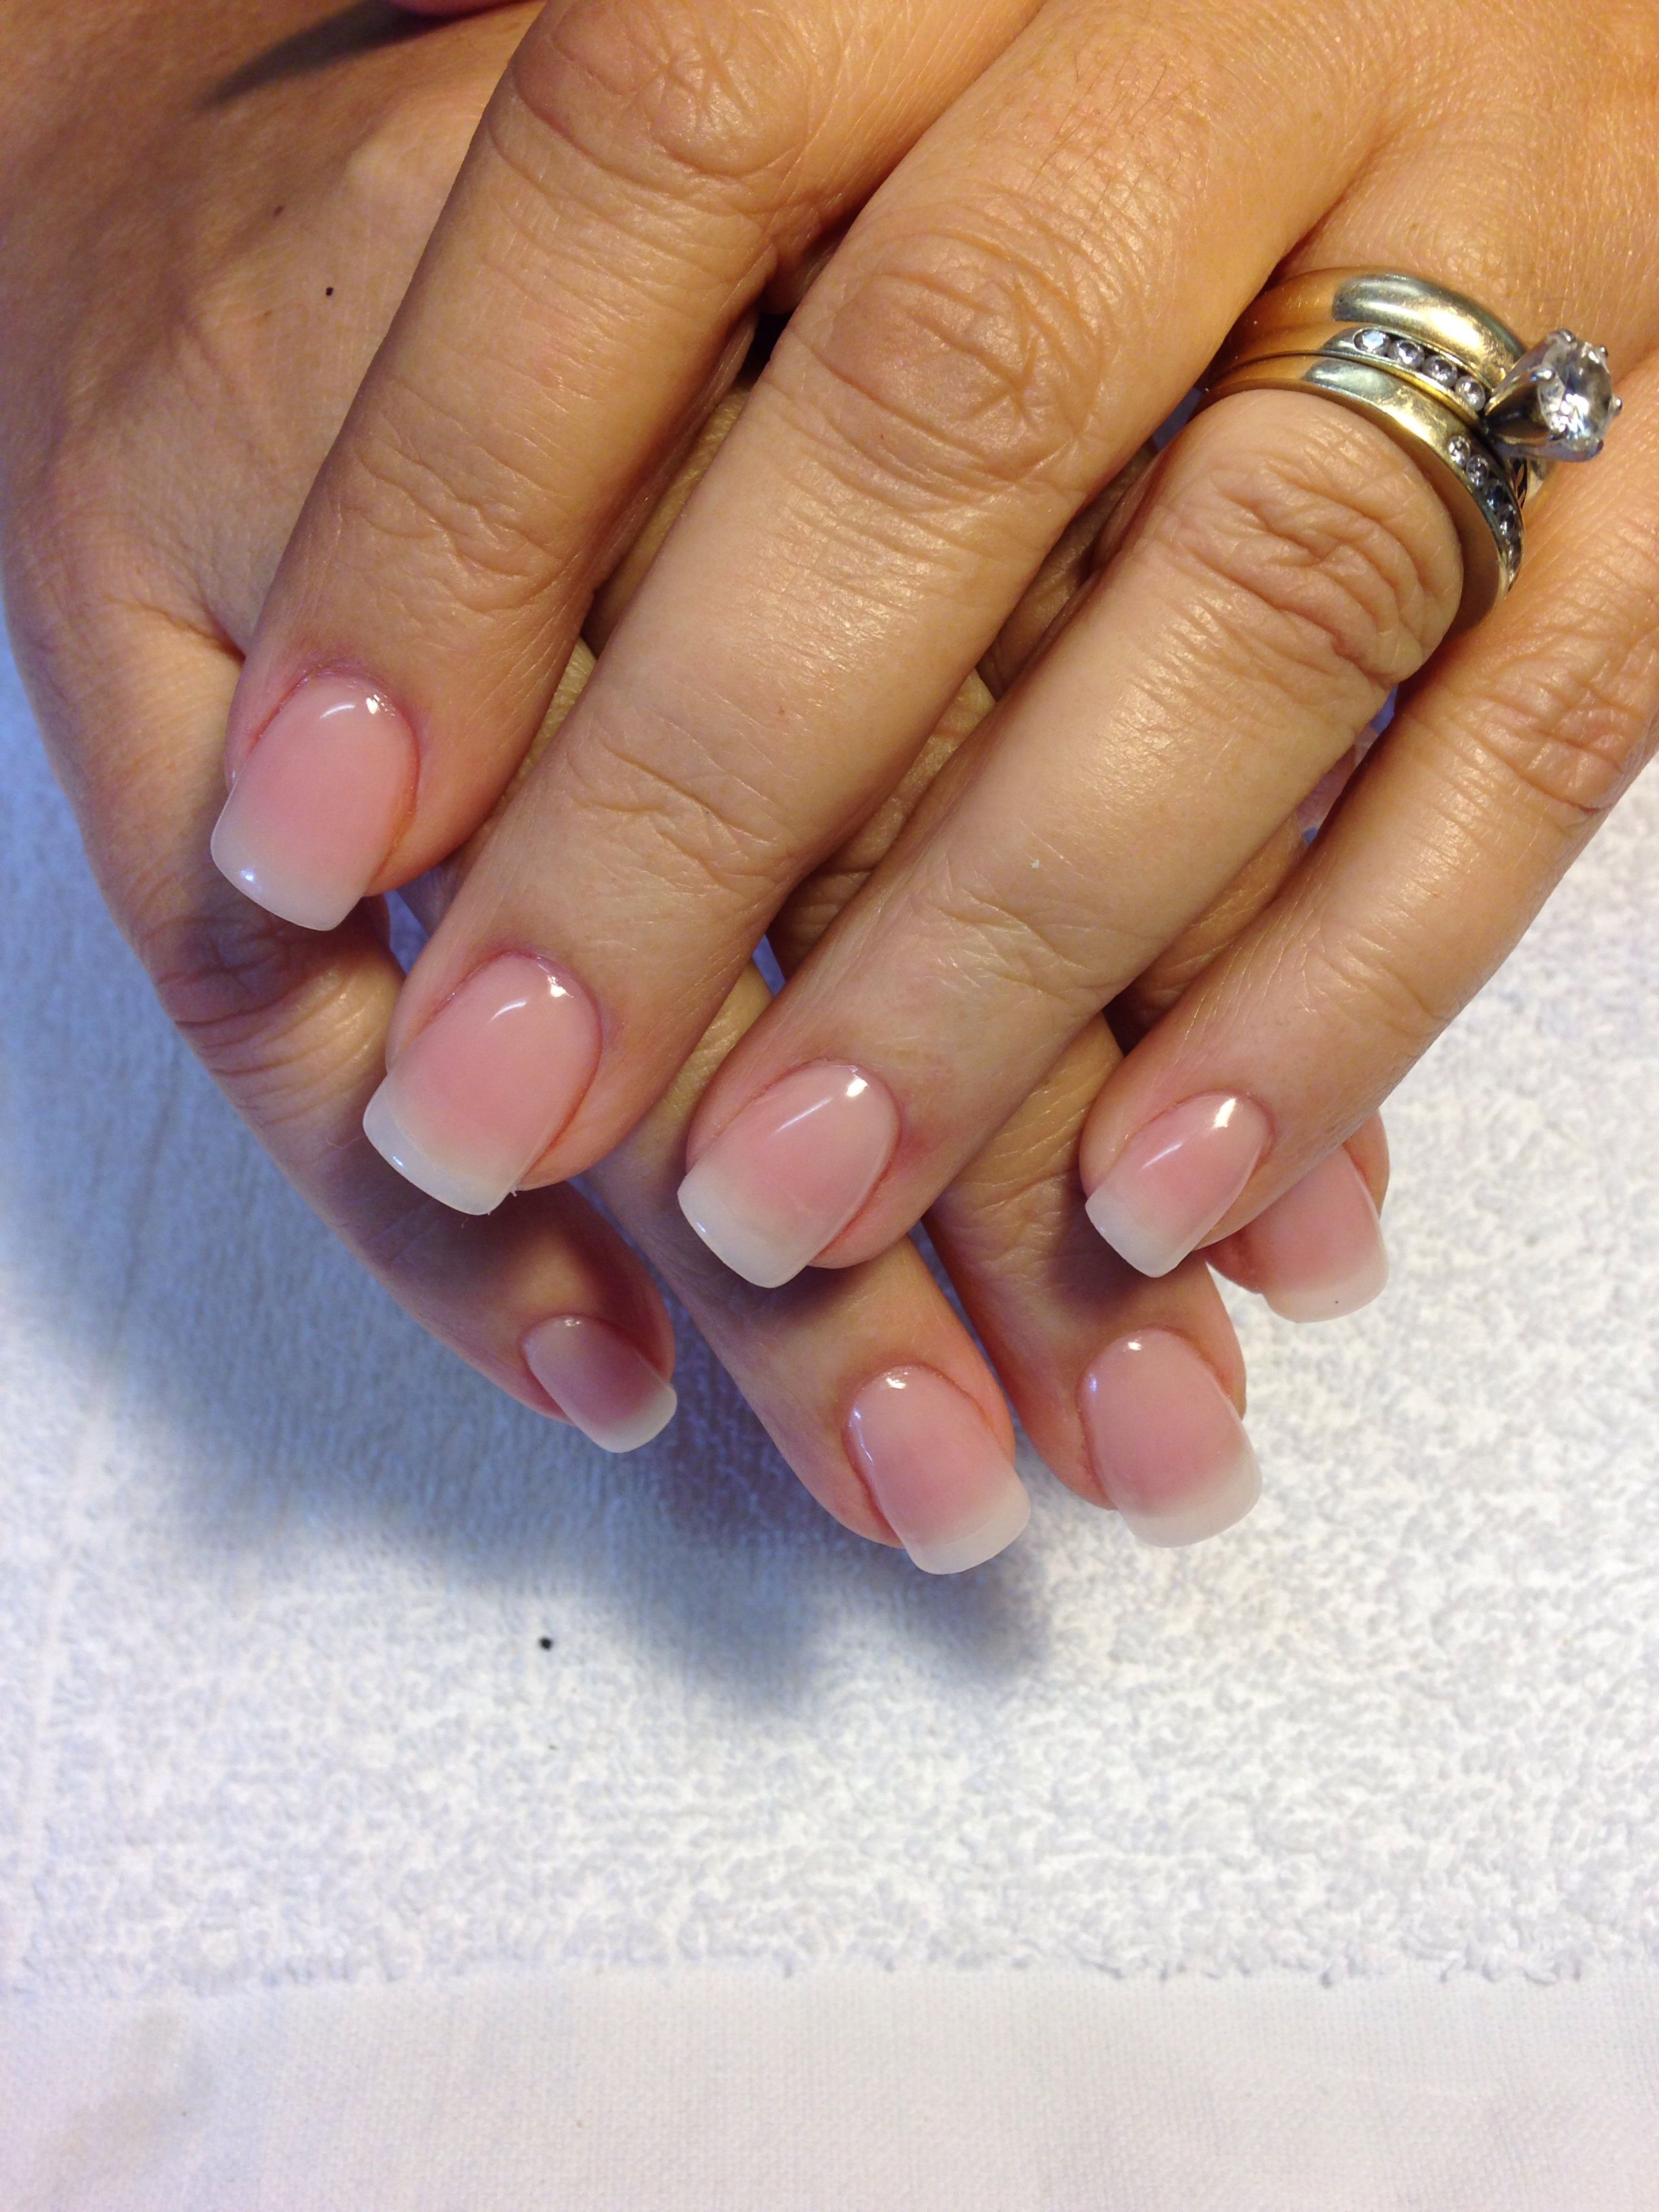 Acrylic but looking natural | Teresa\'s Nails | Pinterest | Acrylics ...